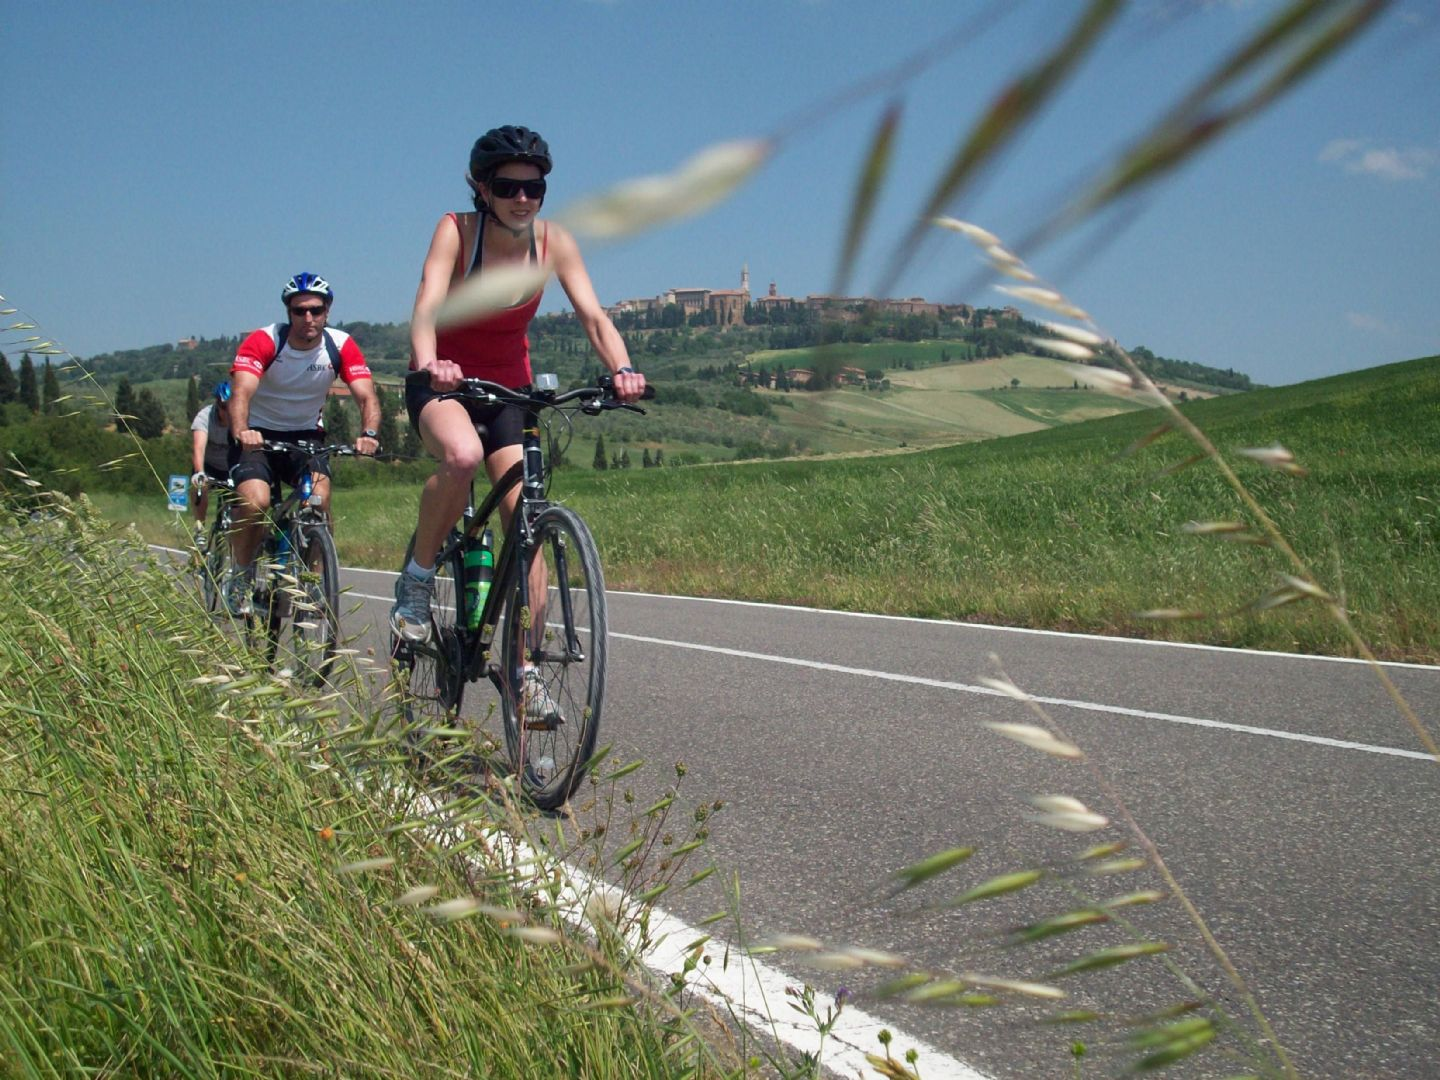 pied 1.JPG - Italy - Piemonte - Vineyards and Castles - Leisure Cycling Holiday - Guided - Italia Leisure and Family Cycling